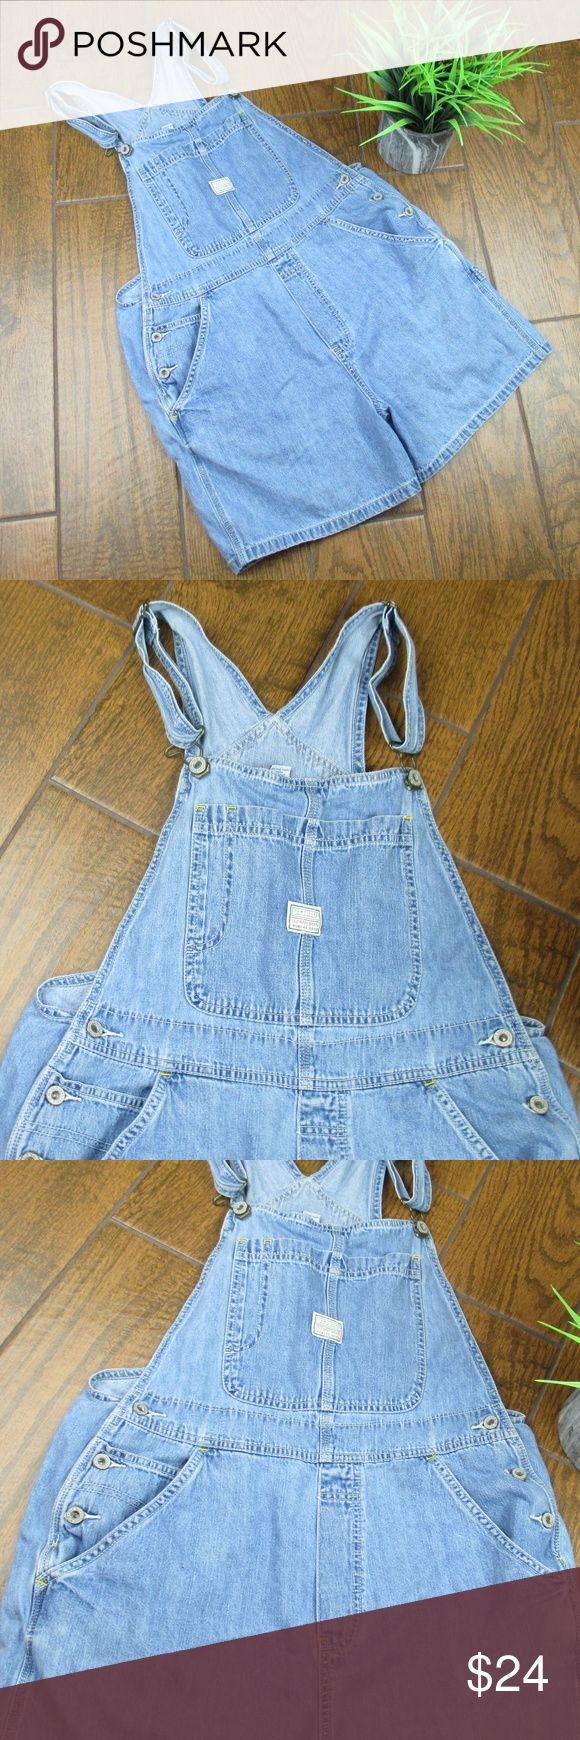 Medium Overall Shorts Old Navy Denim 100% Cotton Old navy Denim Short Overalls Size Medium 100% Cotton Preowned but in great condition Waist is 18 inches across Inseam is 4 inches  Add to a bundle for an automatic discount  Colors may very due to lighting, seller does its best to portray the right color. Please inspect all photos.  #Q003 Old Navy Shorts Jean Shorts